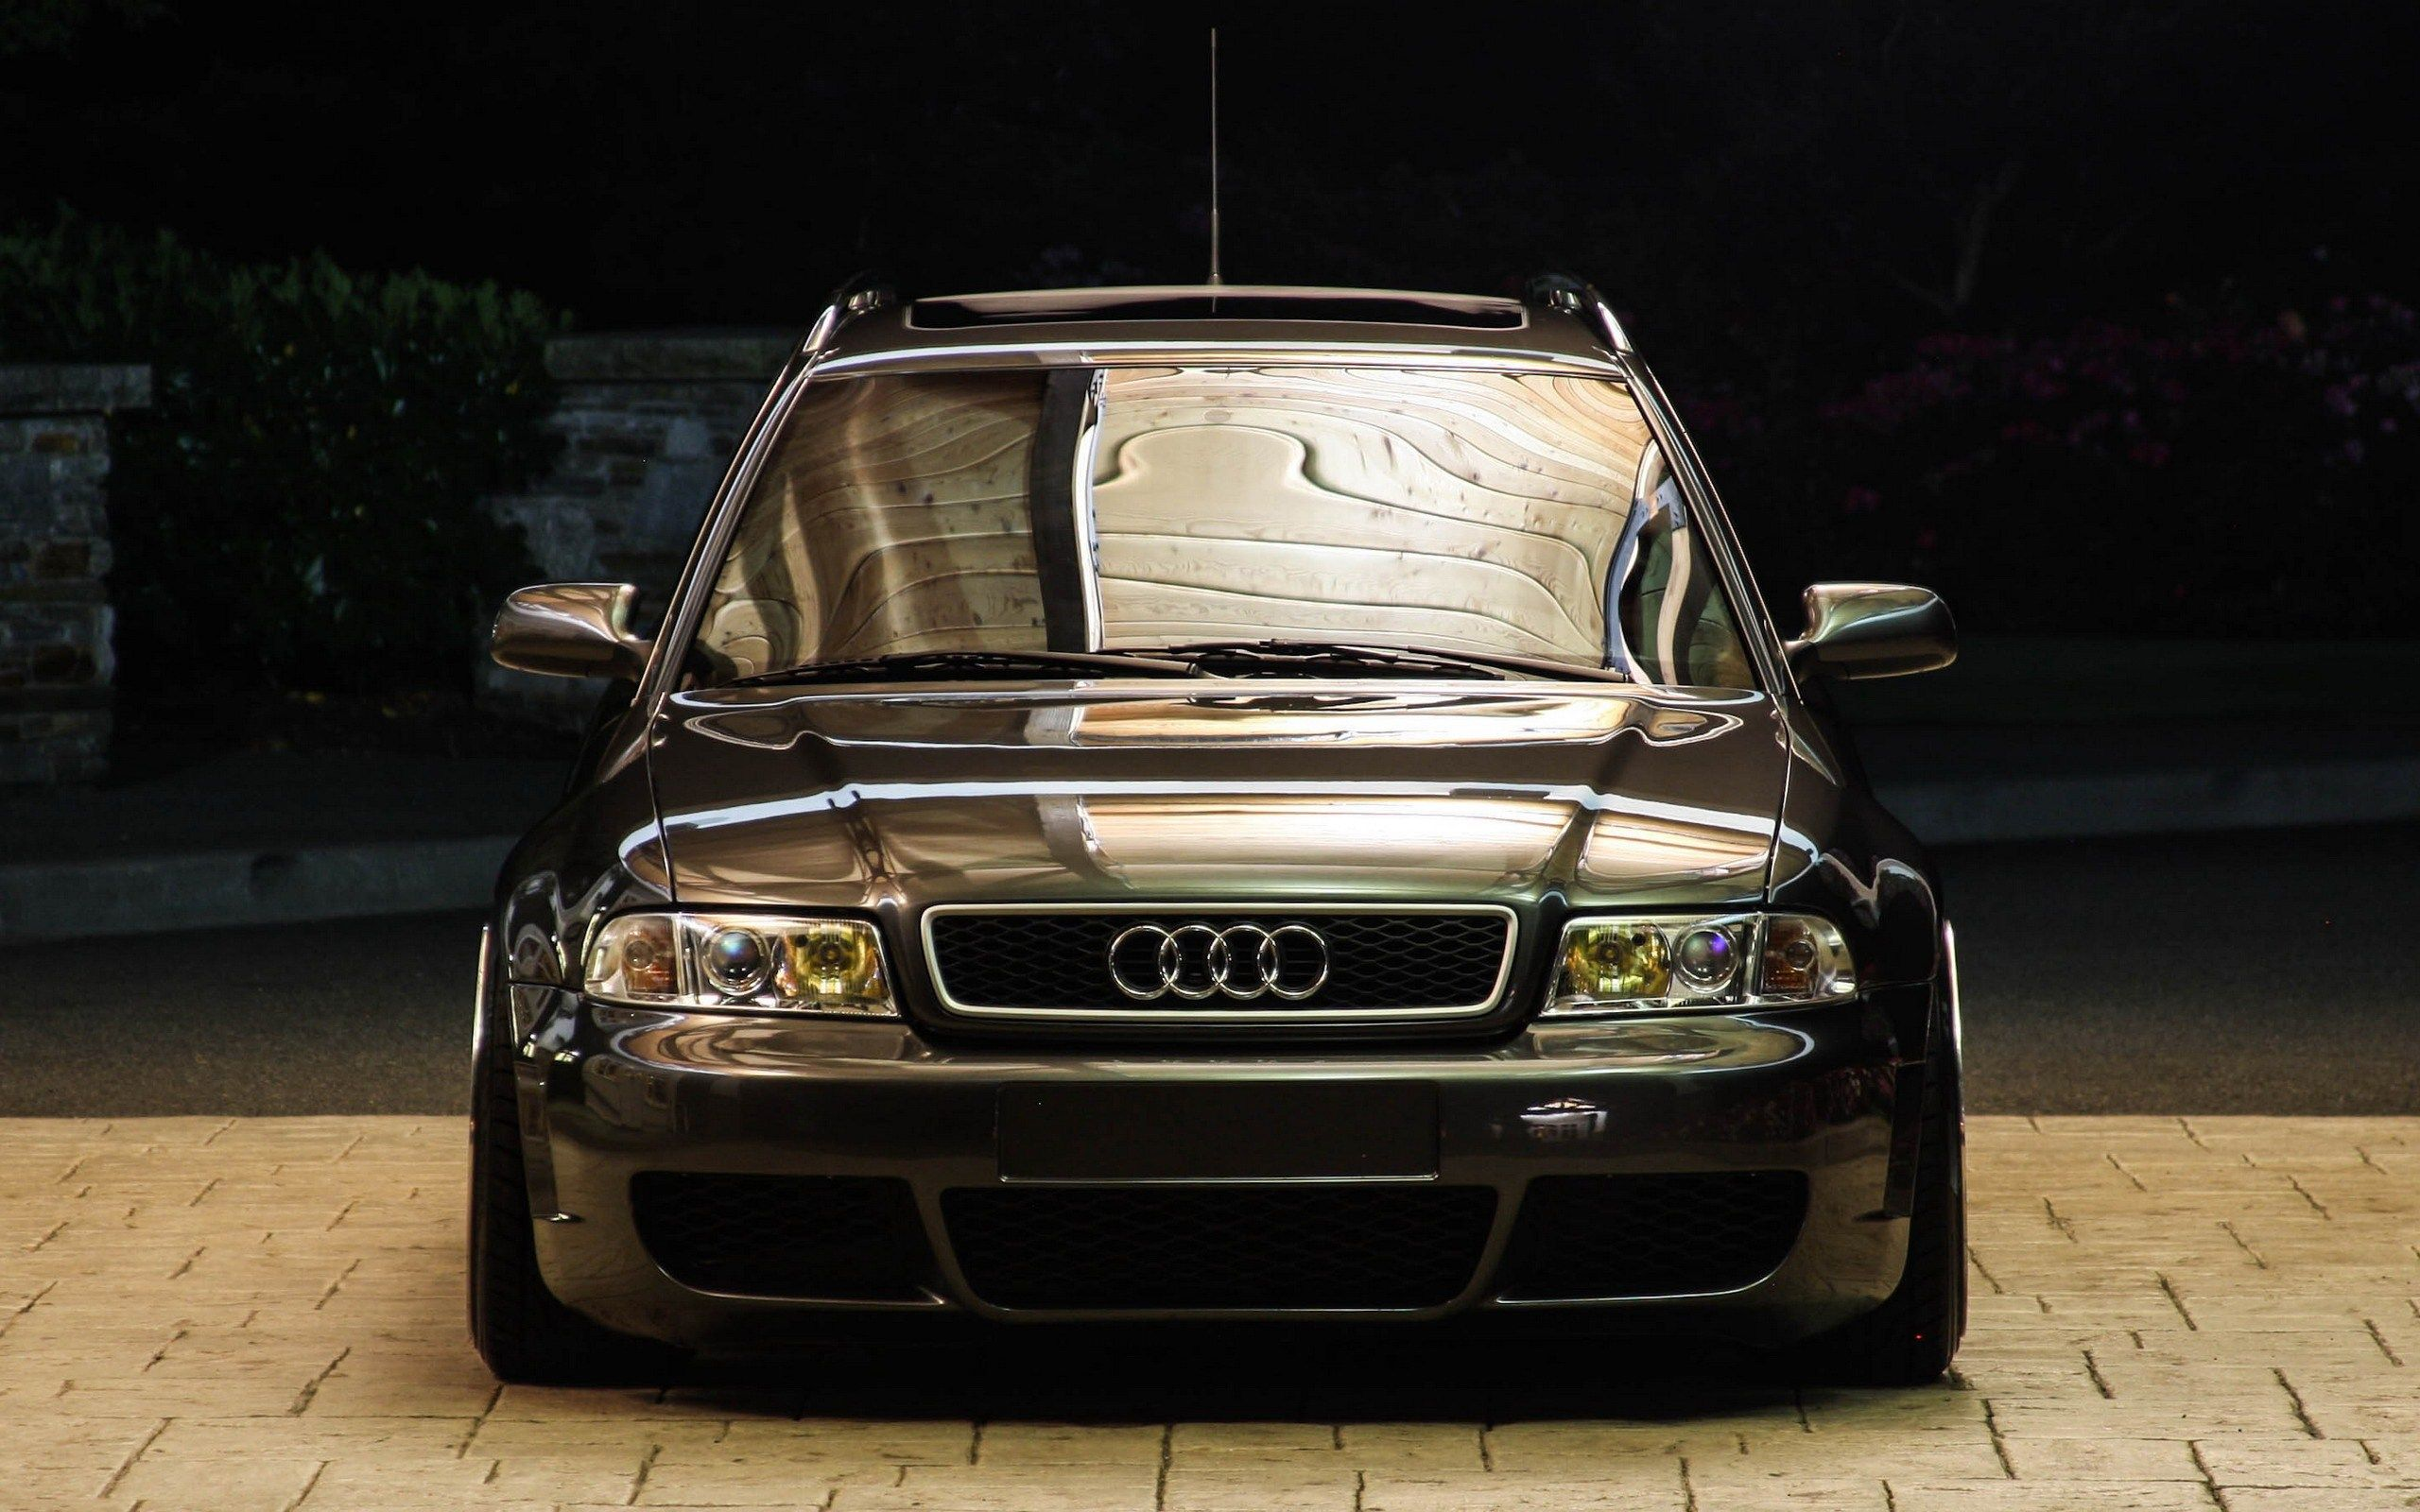 audi s4 b5 avant classic cars audi audi s4 ja audi. Black Bedroom Furniture Sets. Home Design Ideas